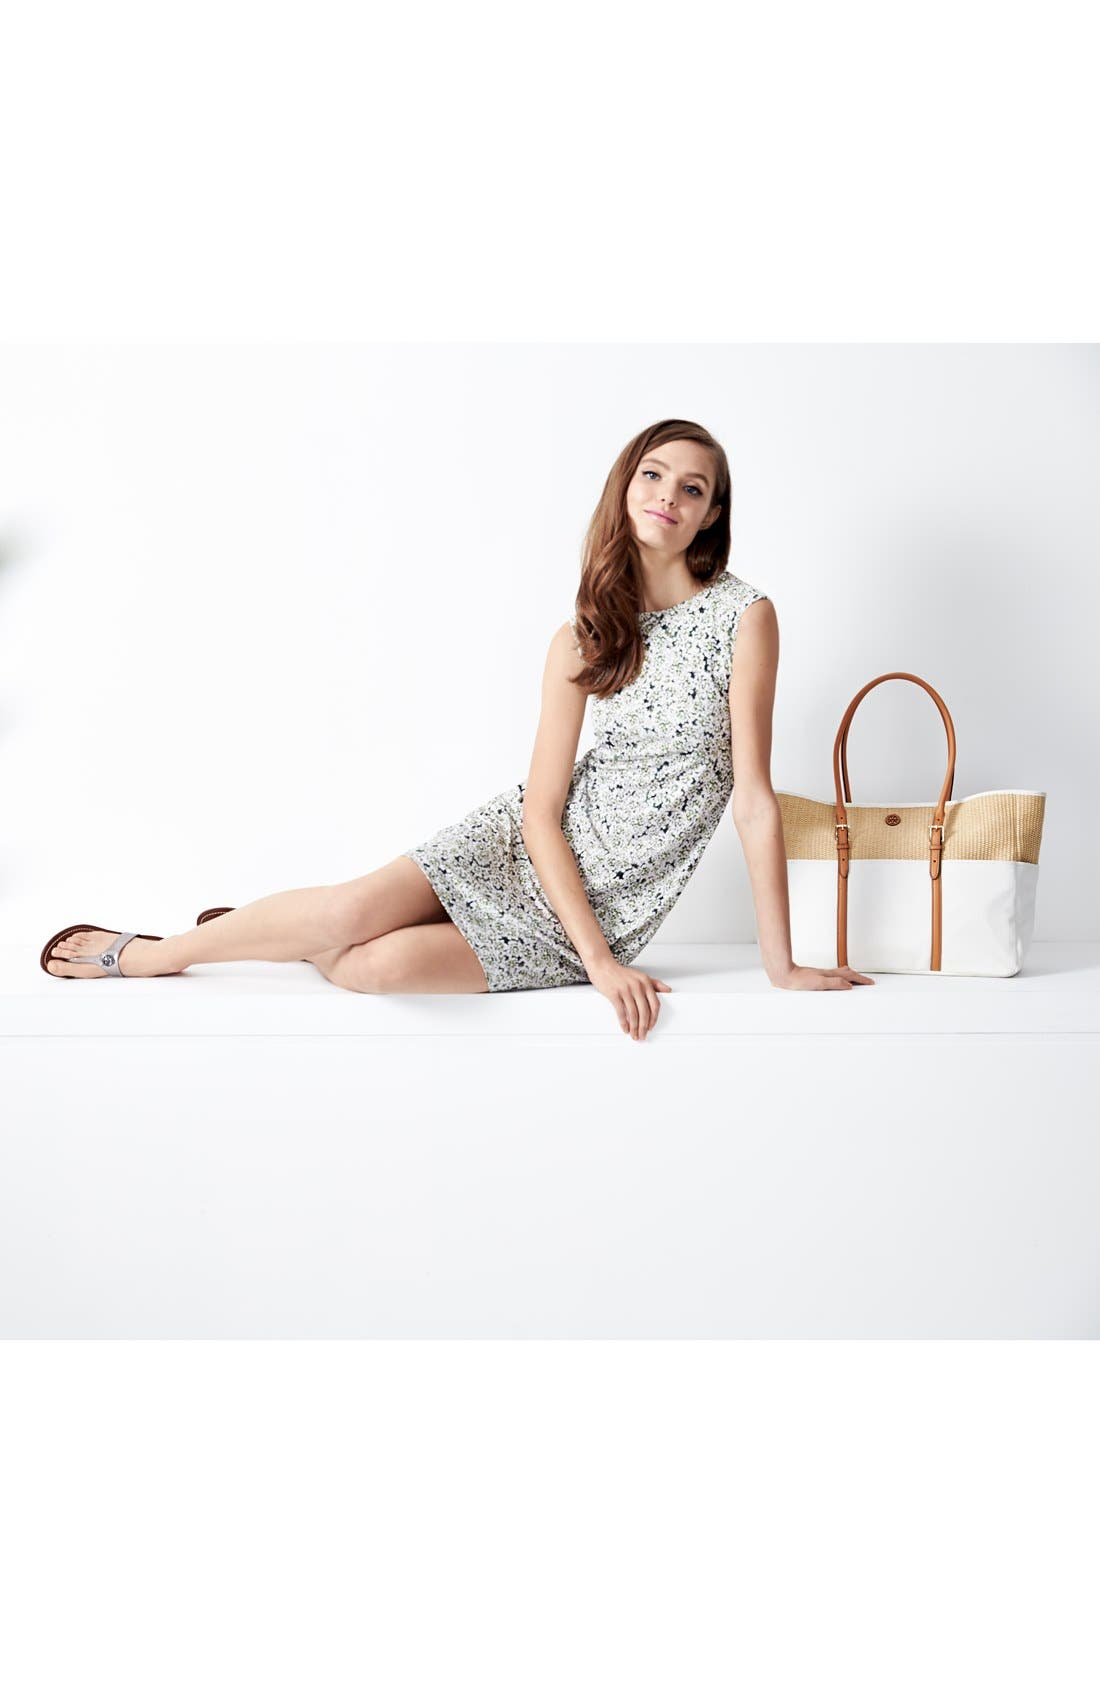 Main Image - Tory Burch Dress & Accessories